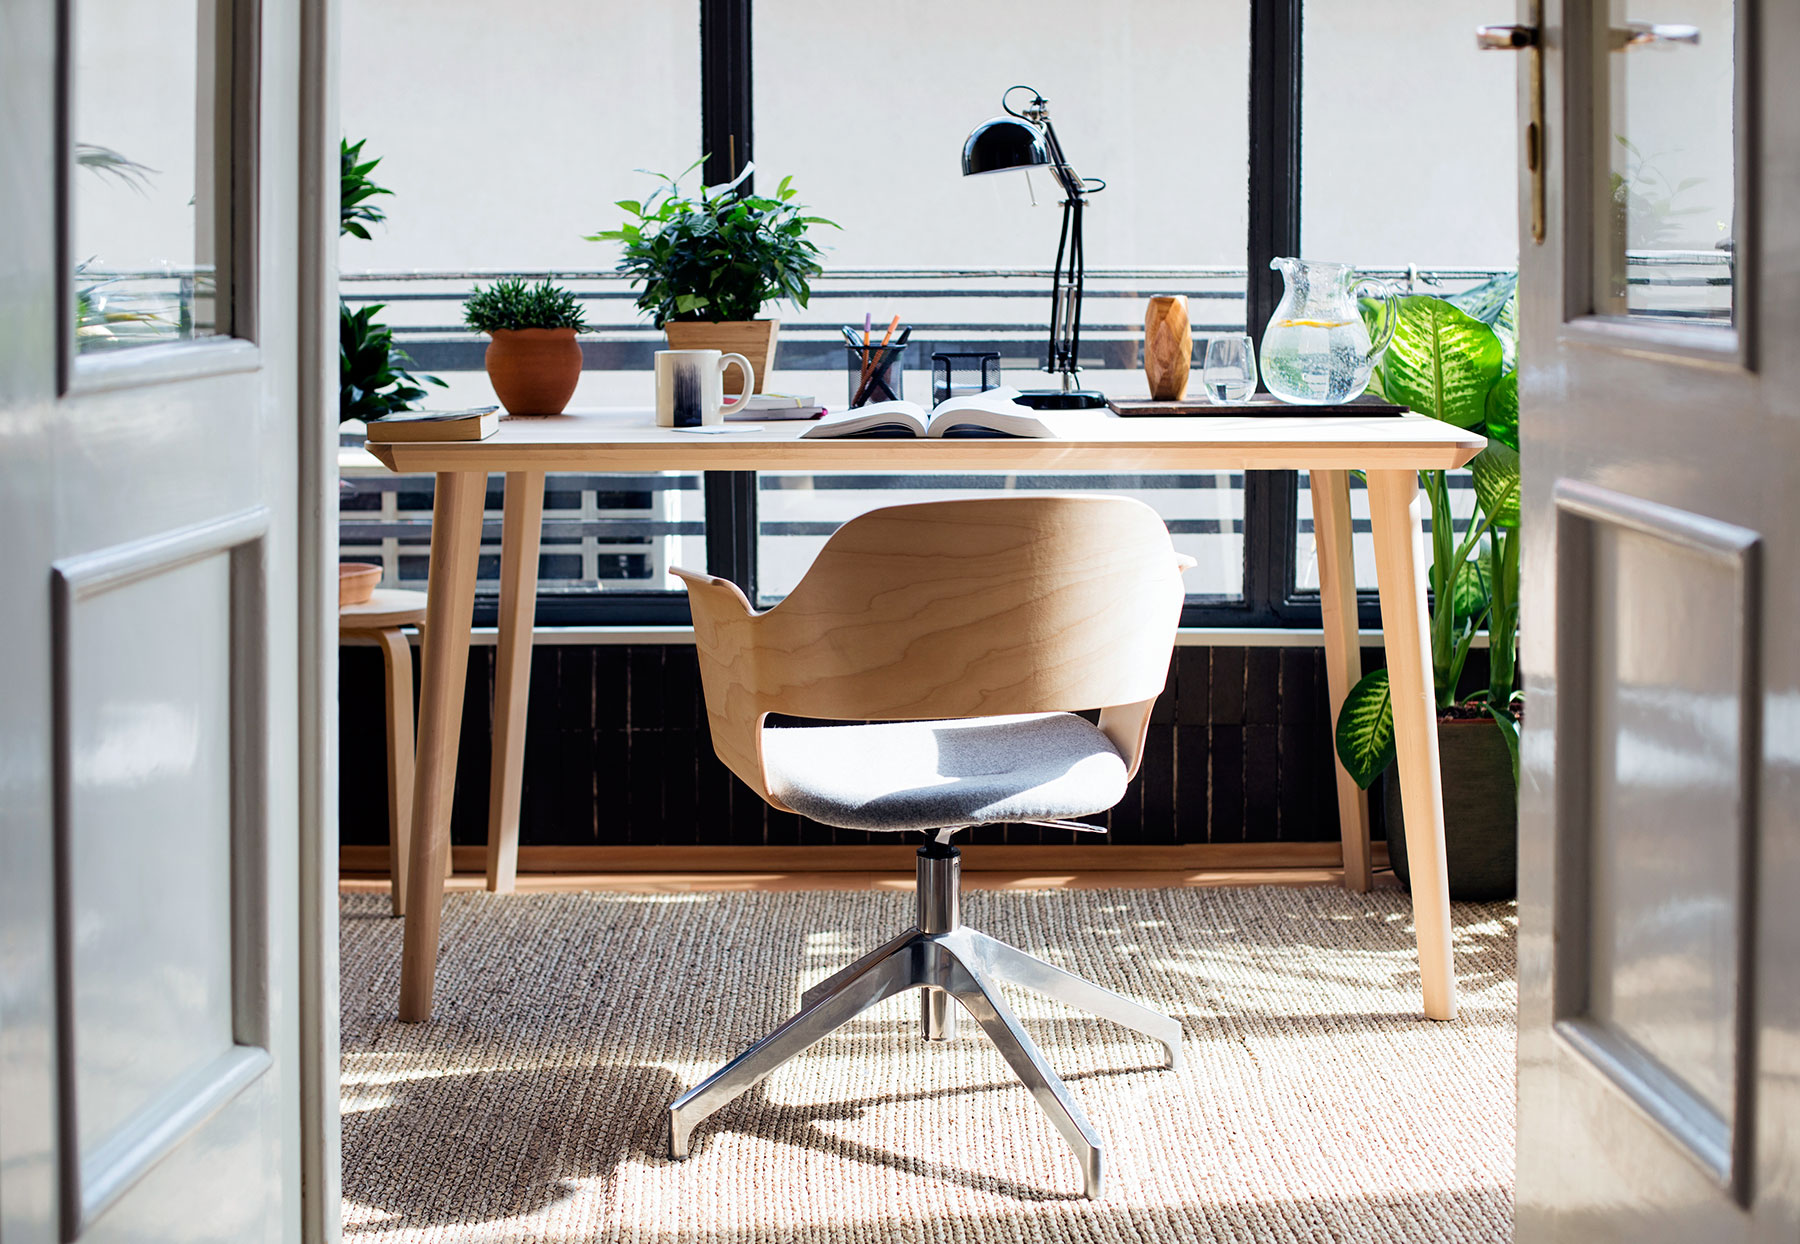 10 Home Office Ideas That Will Make You Want to Work All Day | Real ...